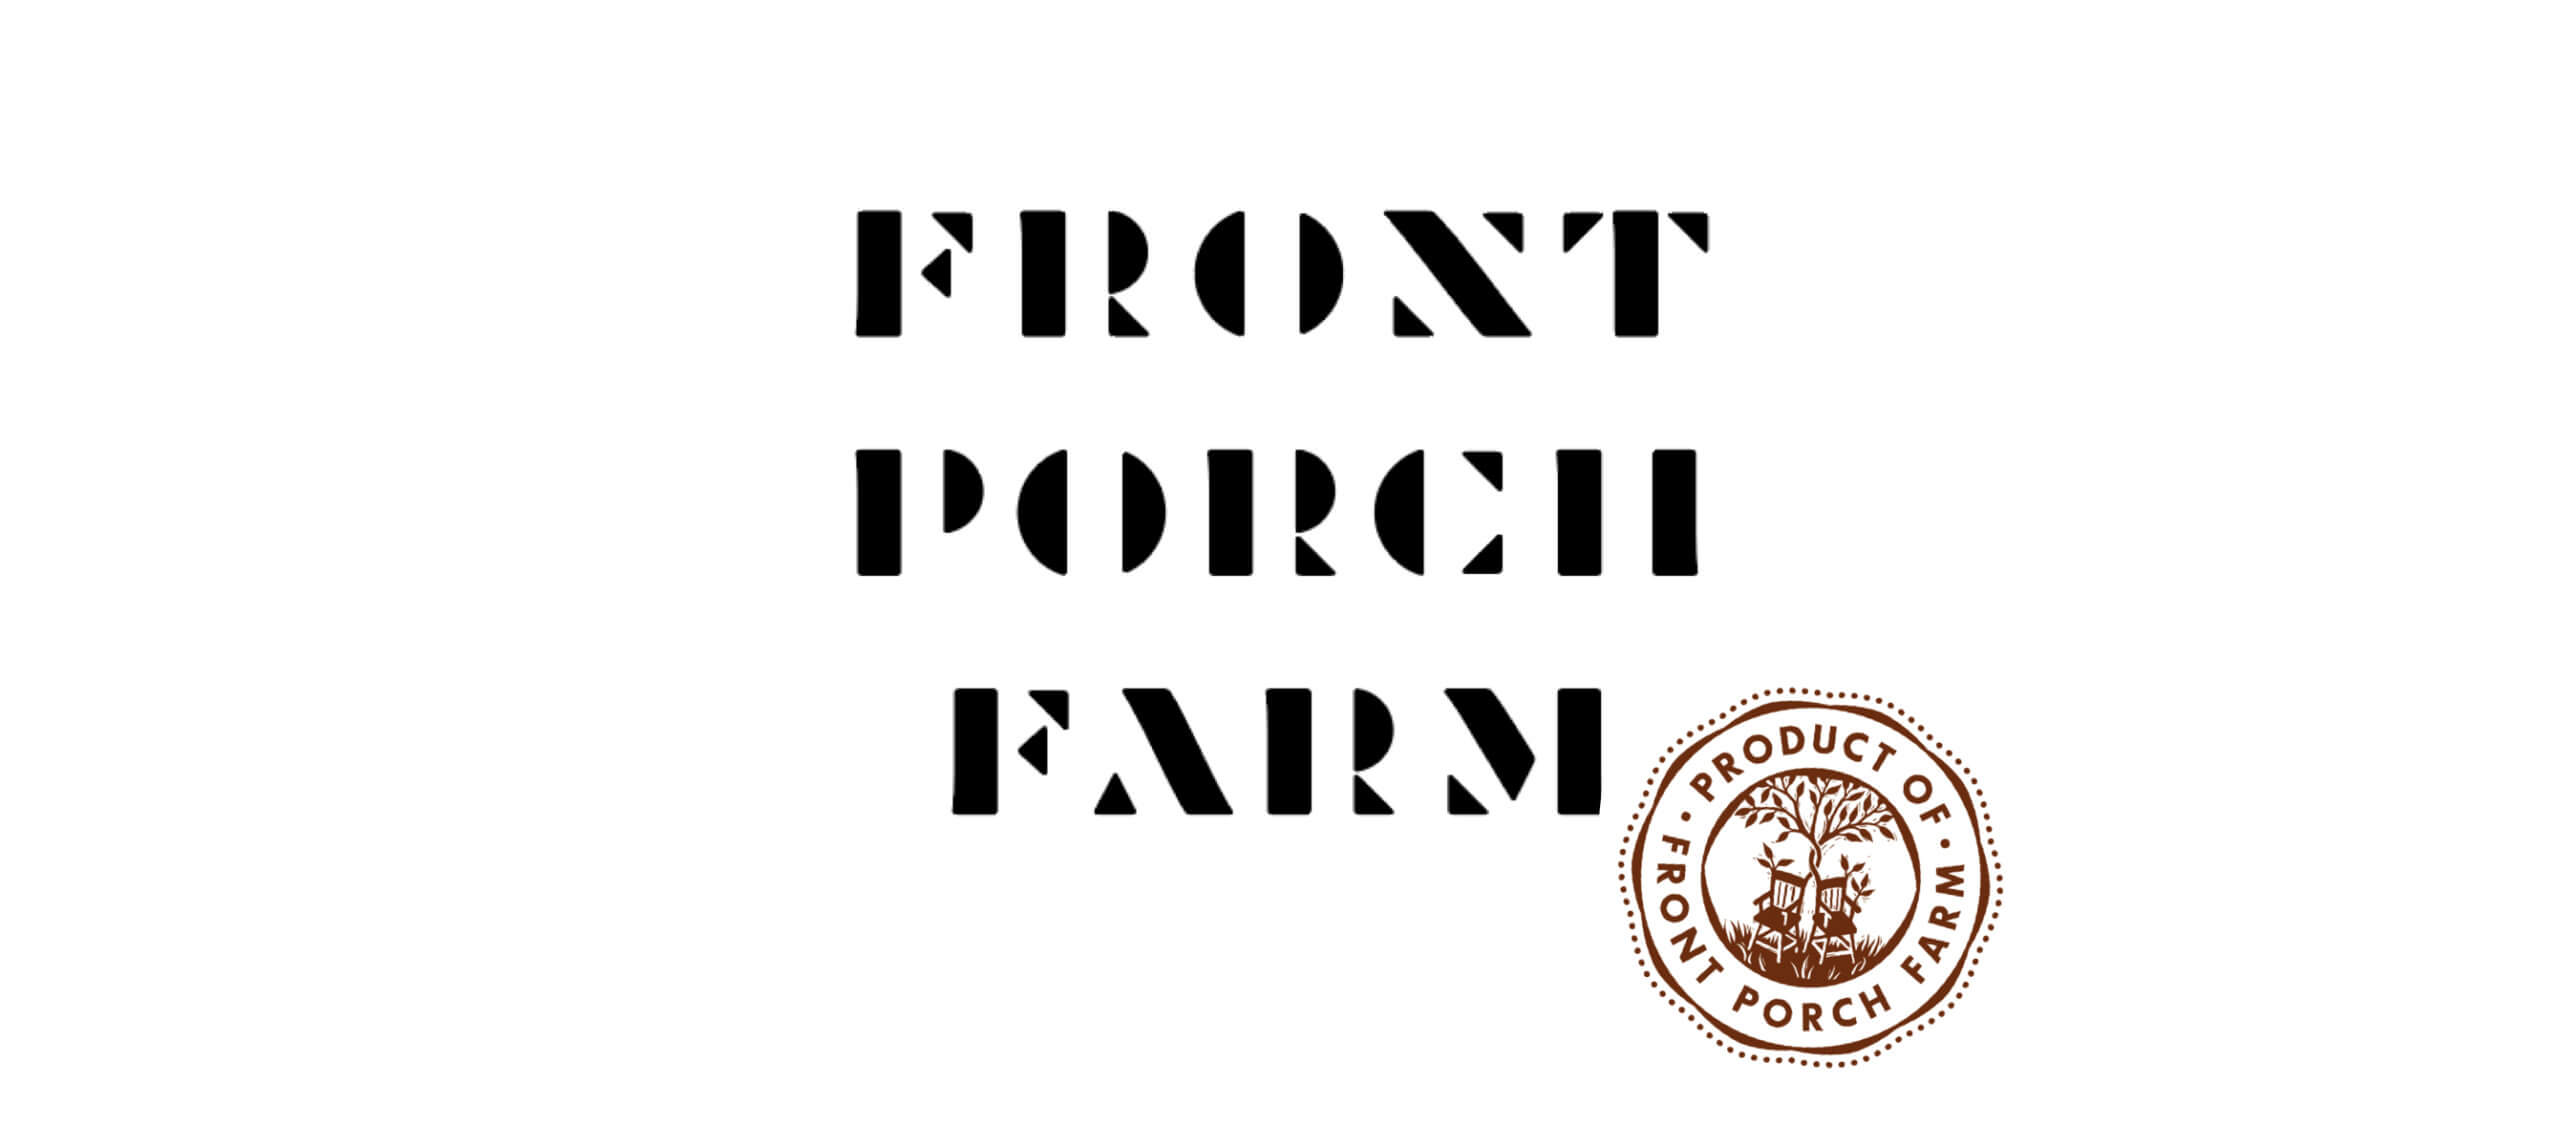 Front Port Farm logotype with rocking-chairs-seal logo mark